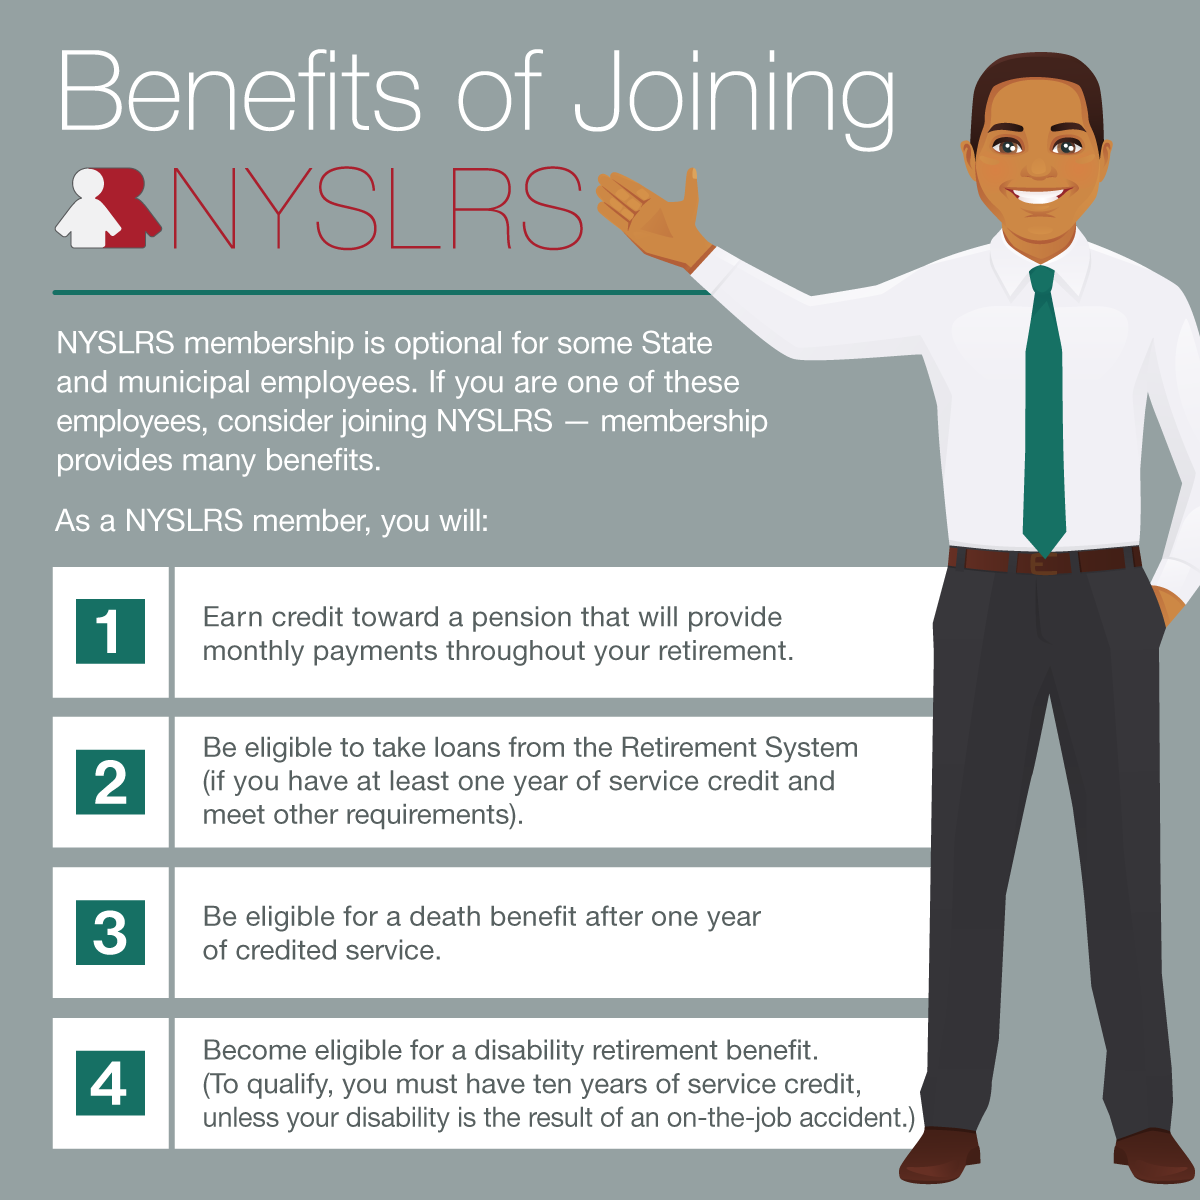 join NYSLRS for membership benefits